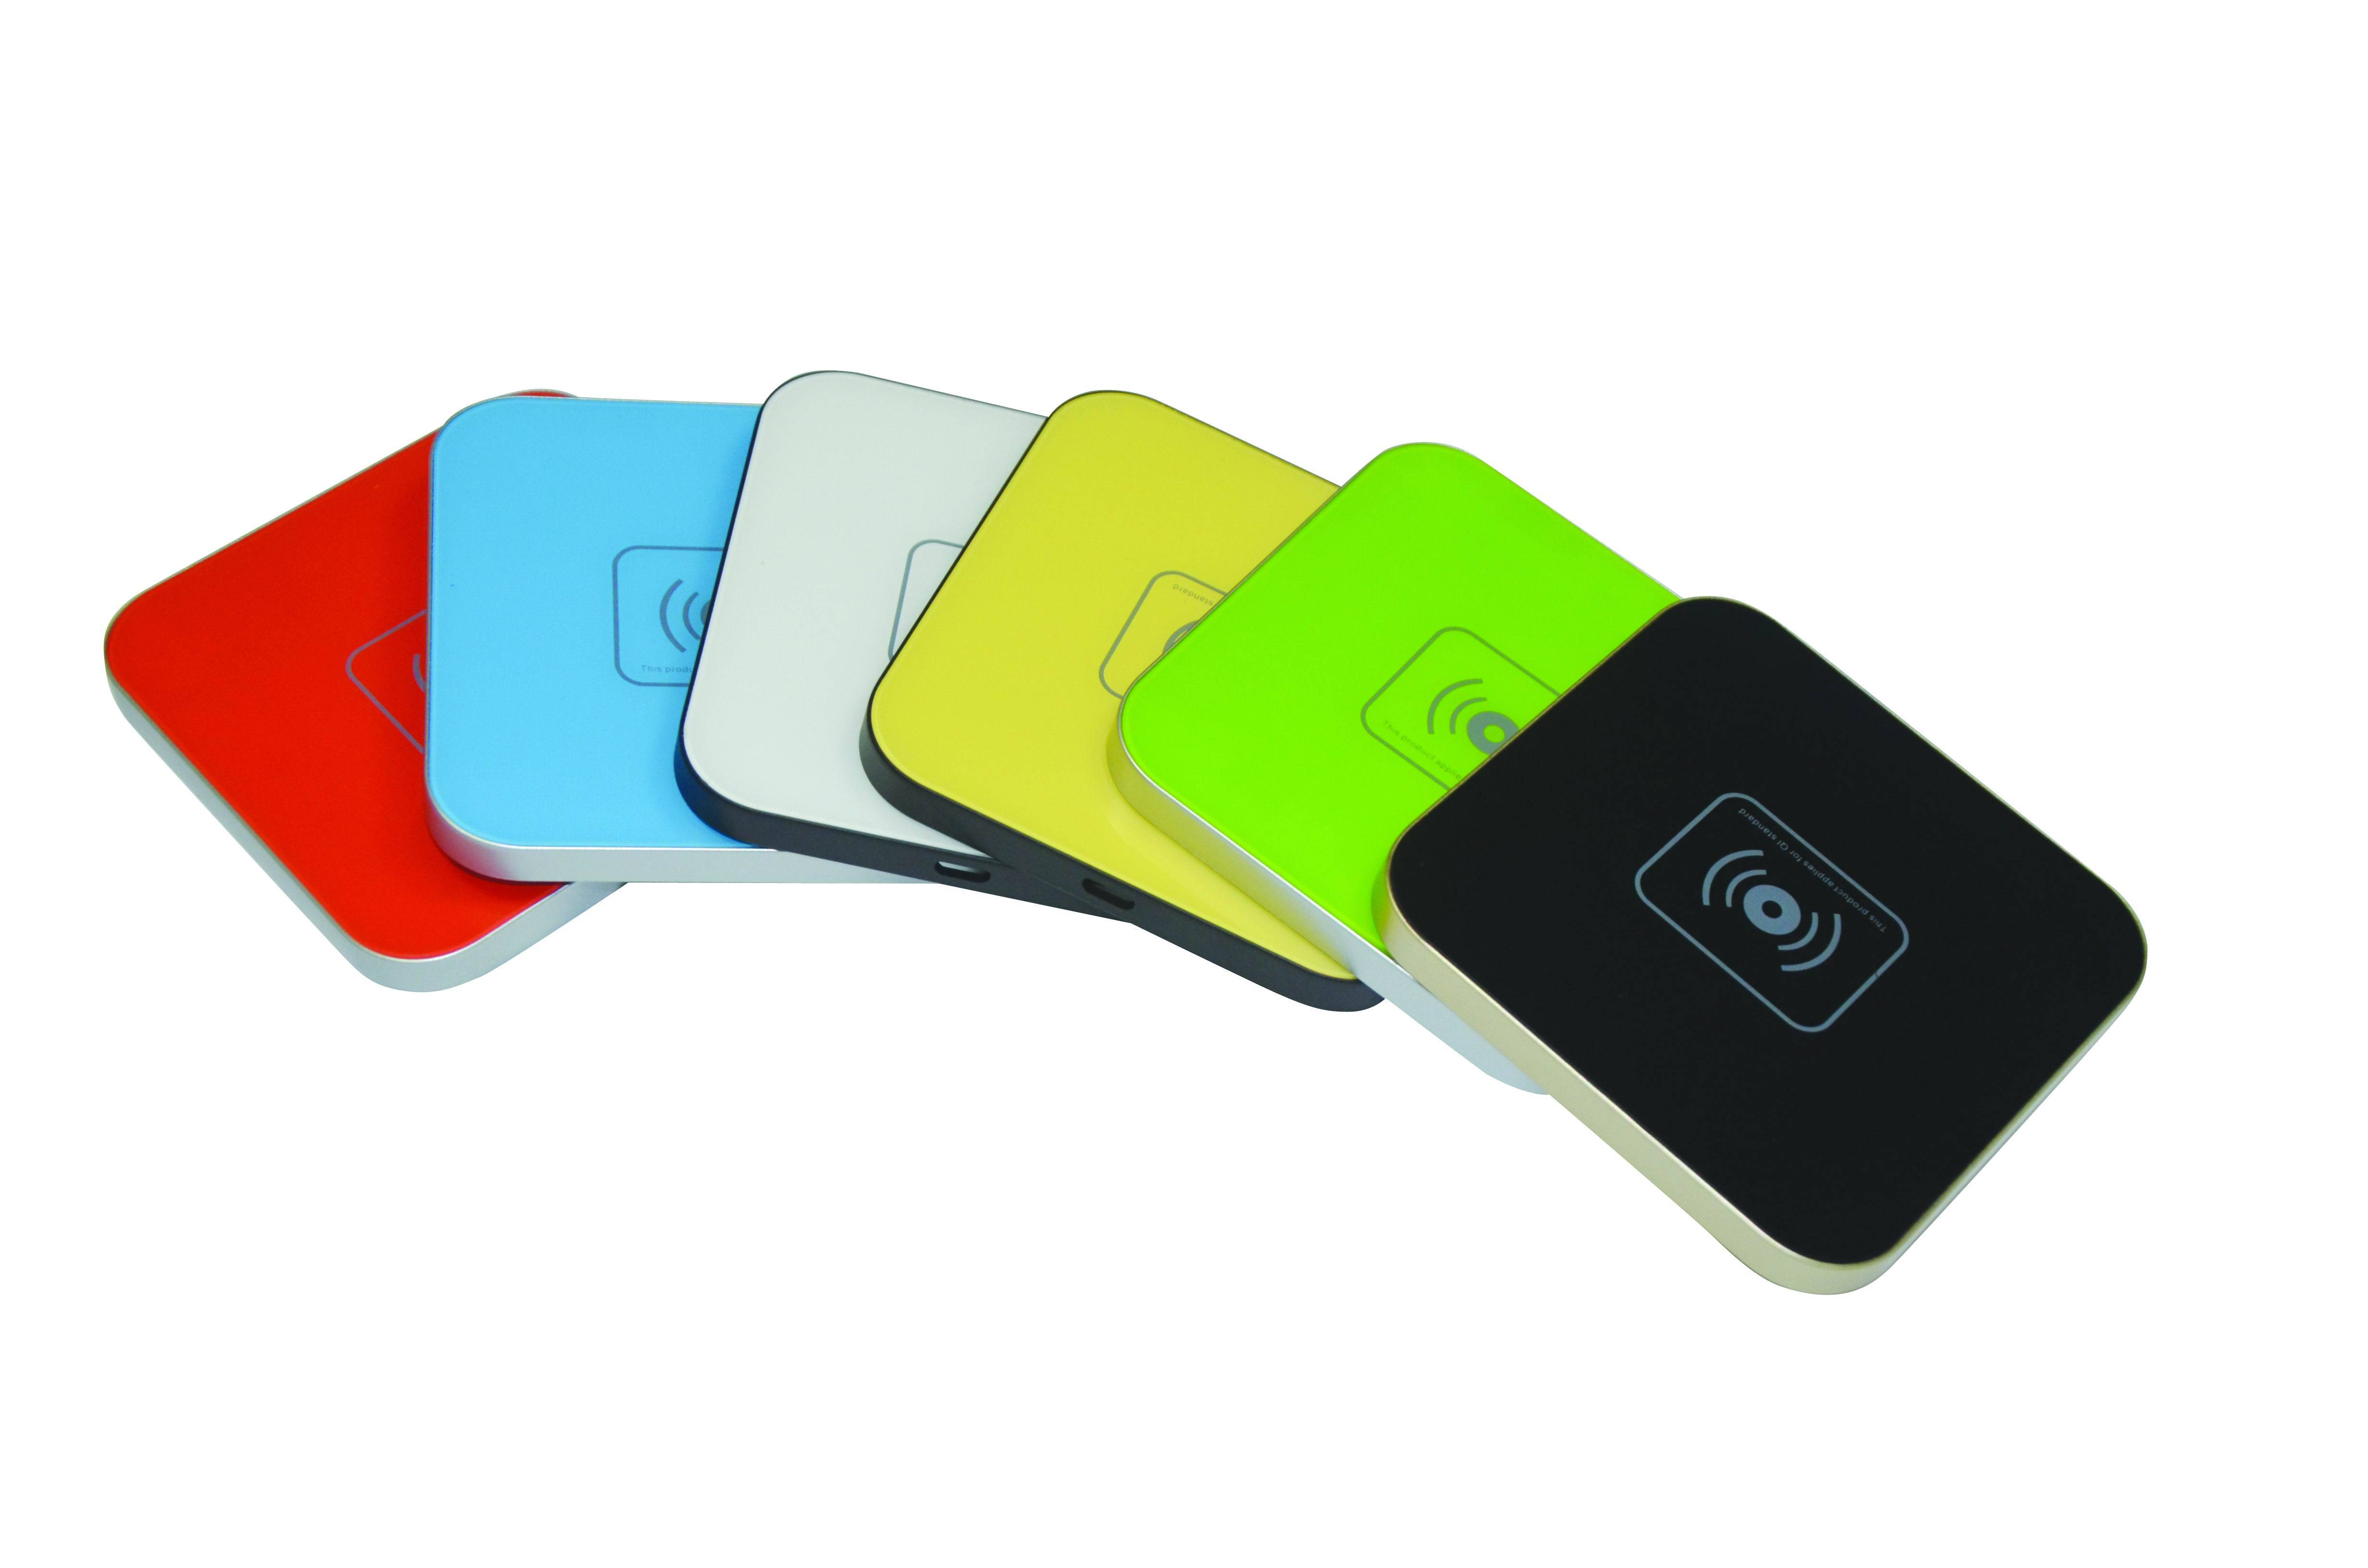 Colorful Wireless Charging Pad